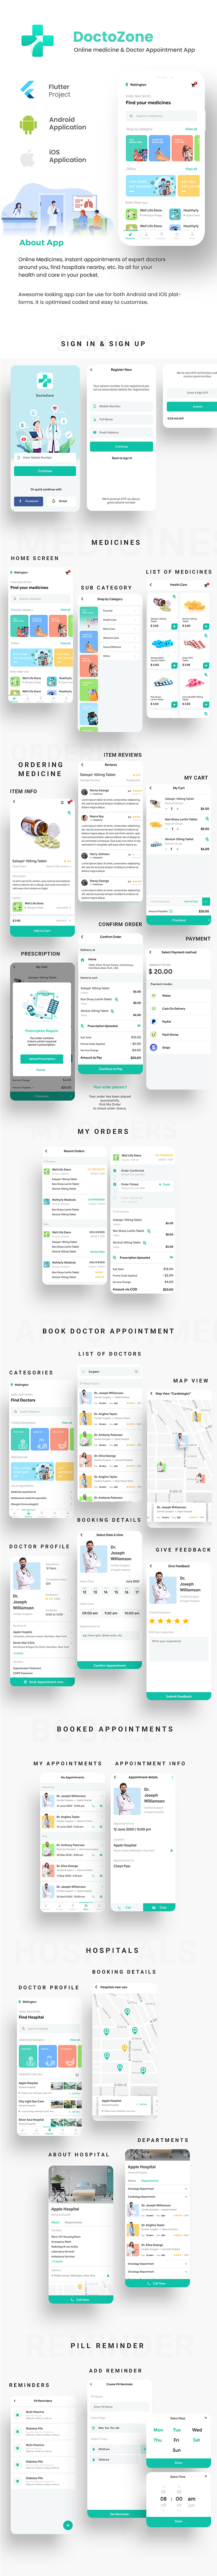 Nearby Doctor App| Online Medicine | Doctor Appointment Booking App |Android + iOS Template| FLUTTER - 3